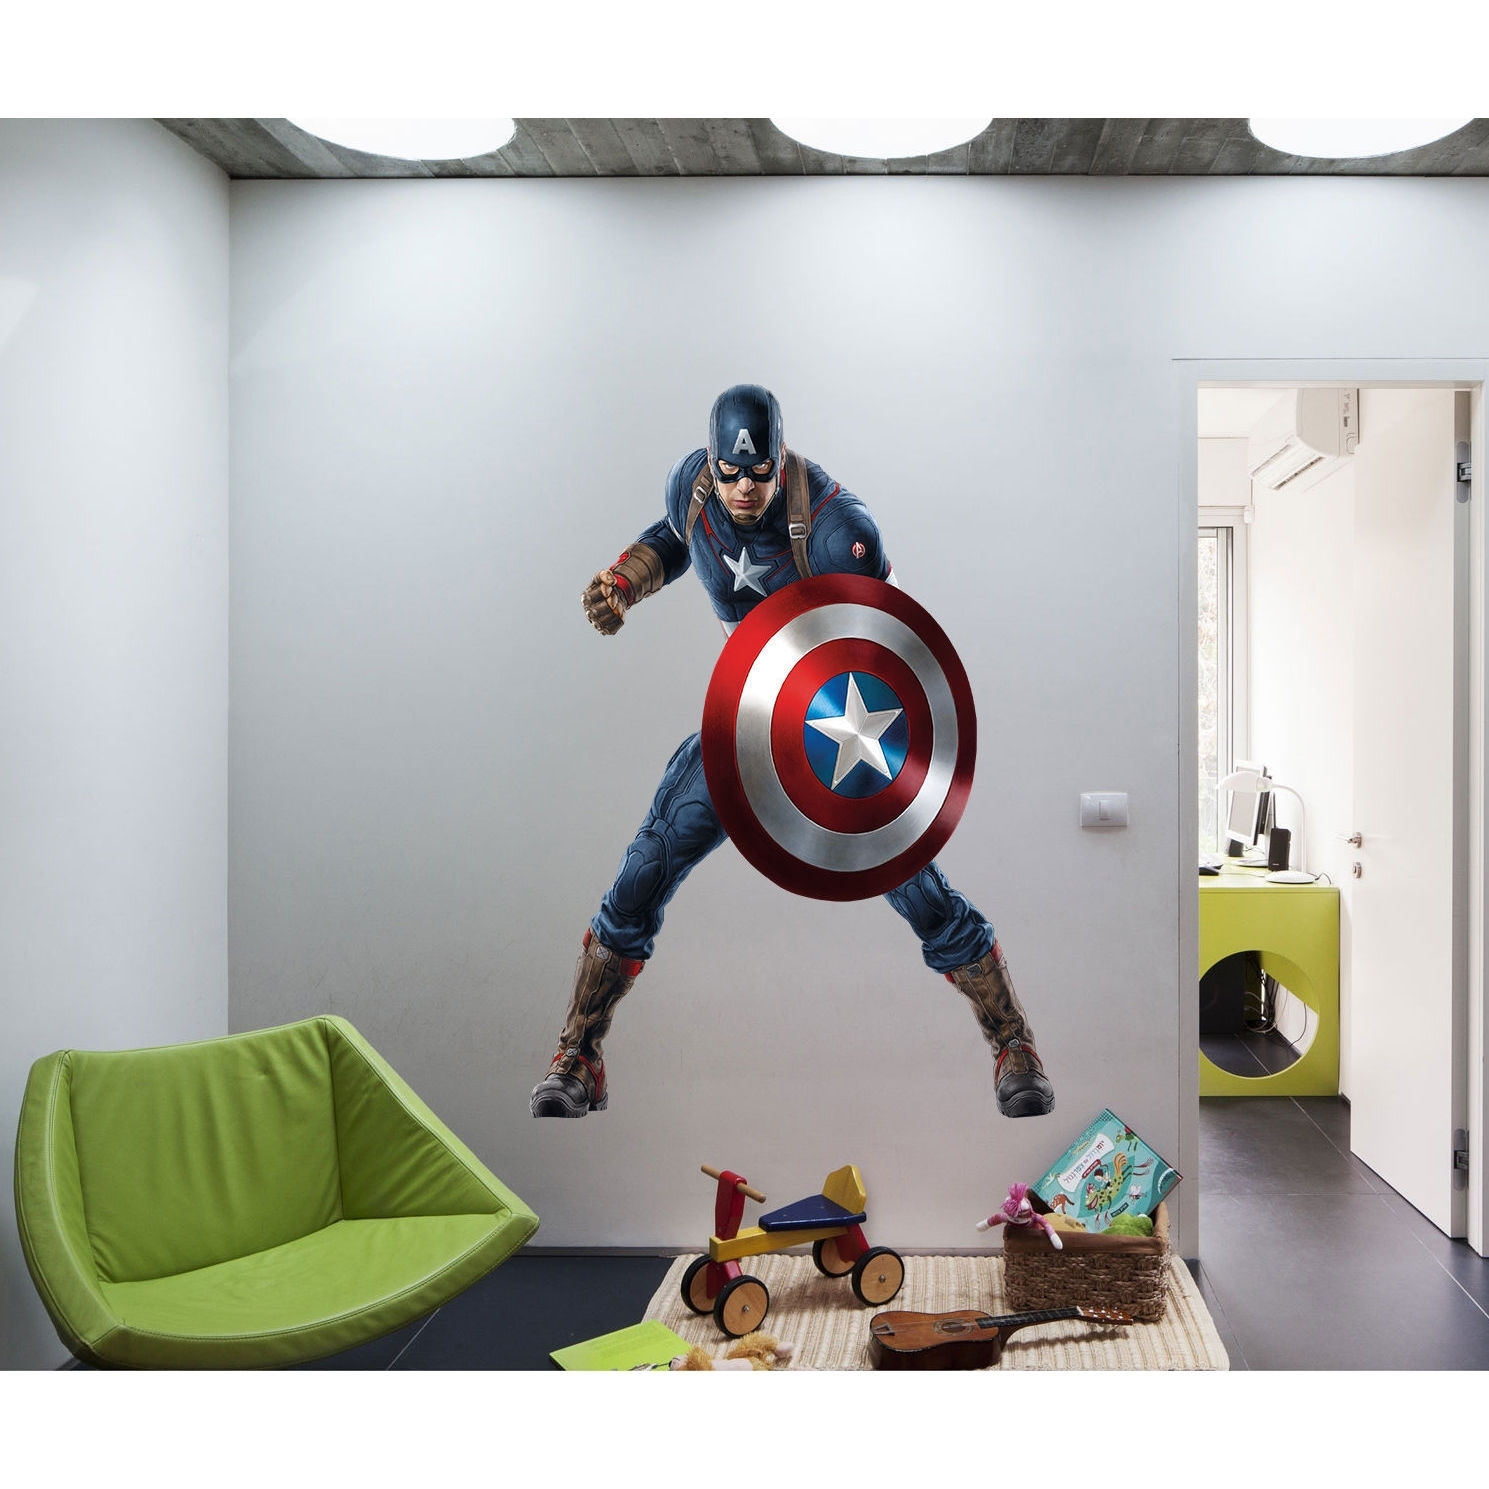 Shop Full Color Superhero Captain America Sticker, Decal, Wall Art Within Newest Captain America Wall Art (View 12 of 15)